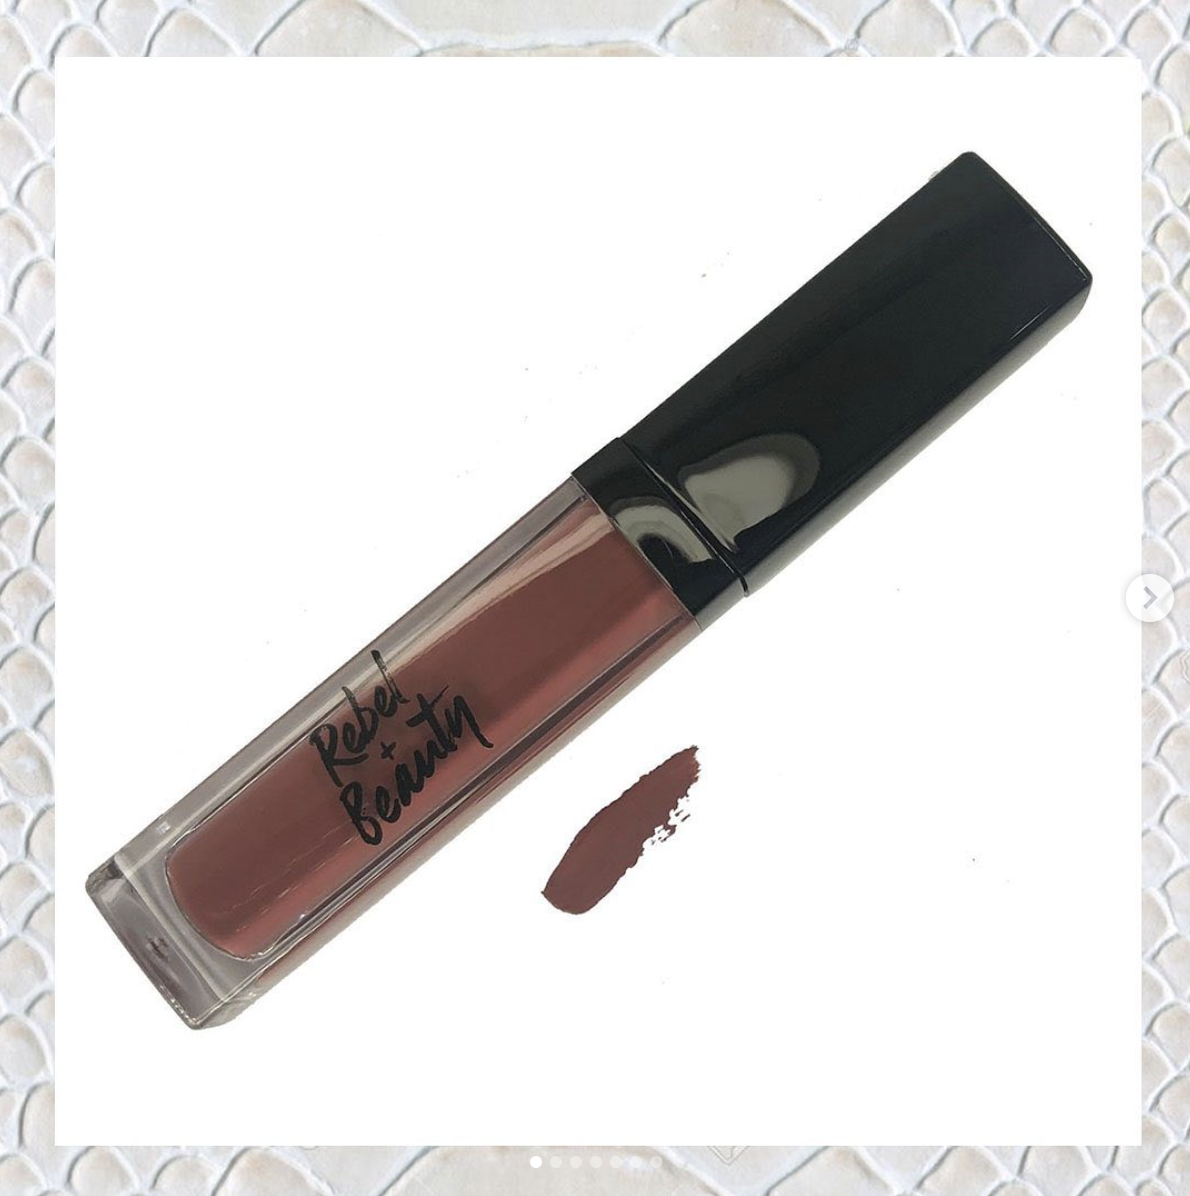 A tube of lipstick in a matte shade